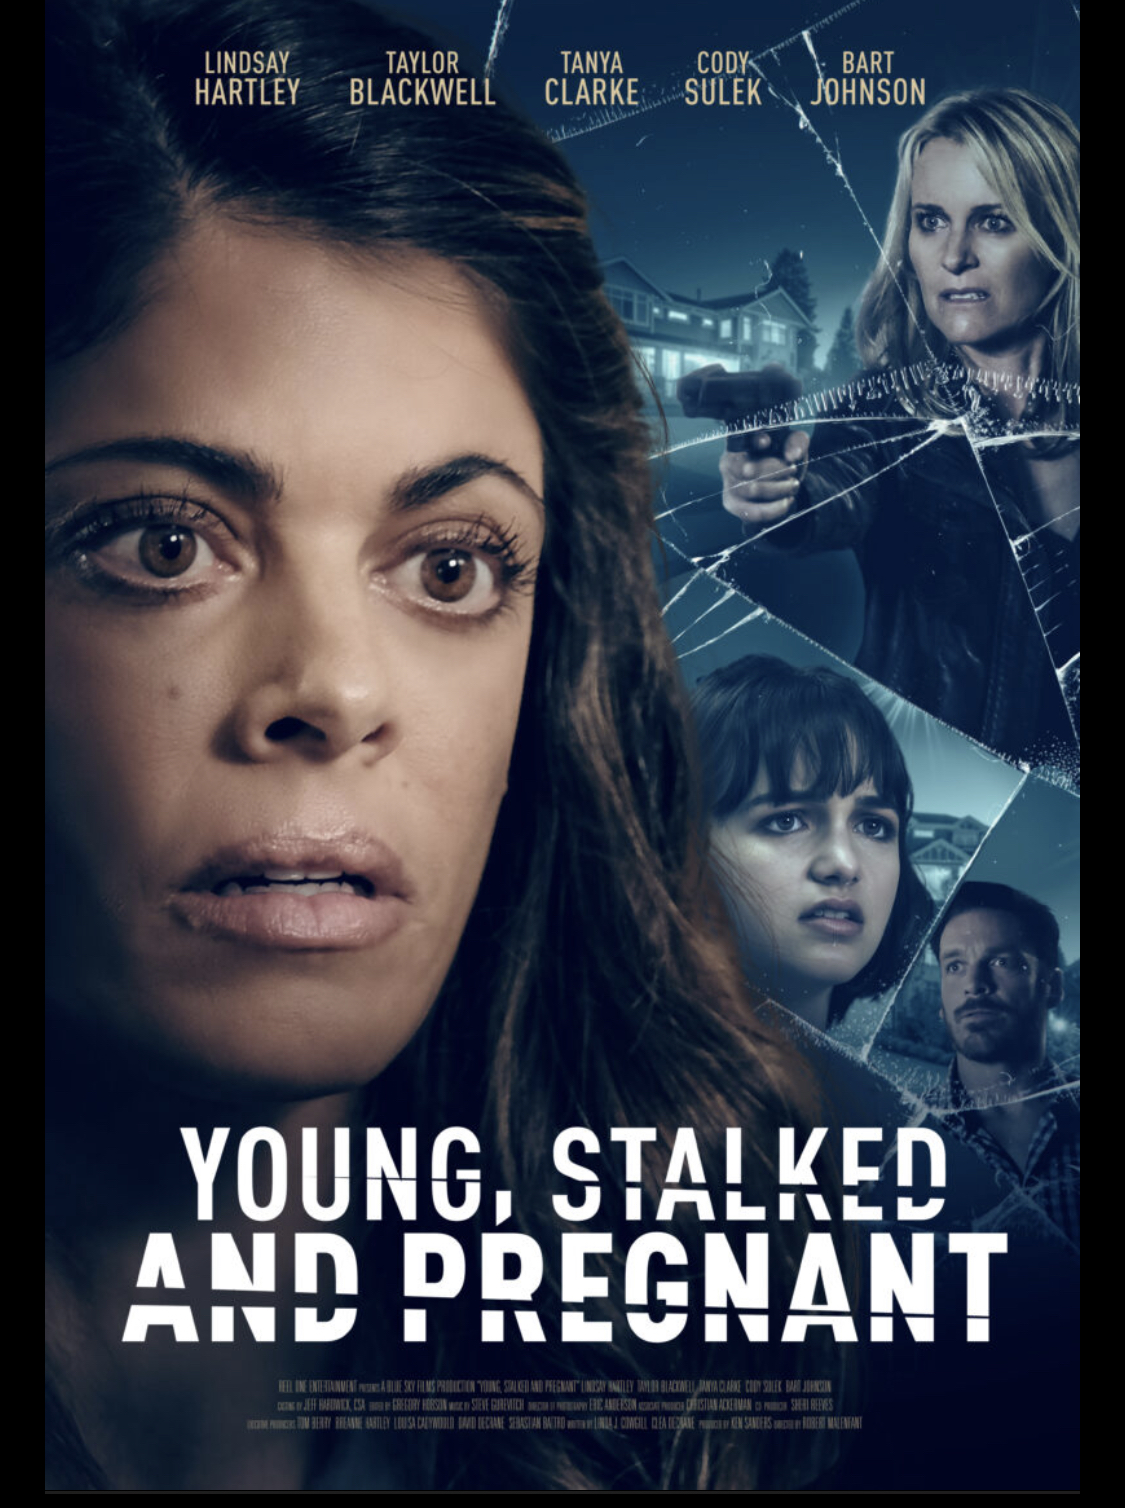 Young, Stalked, and Pregnant| Watch Movies Online